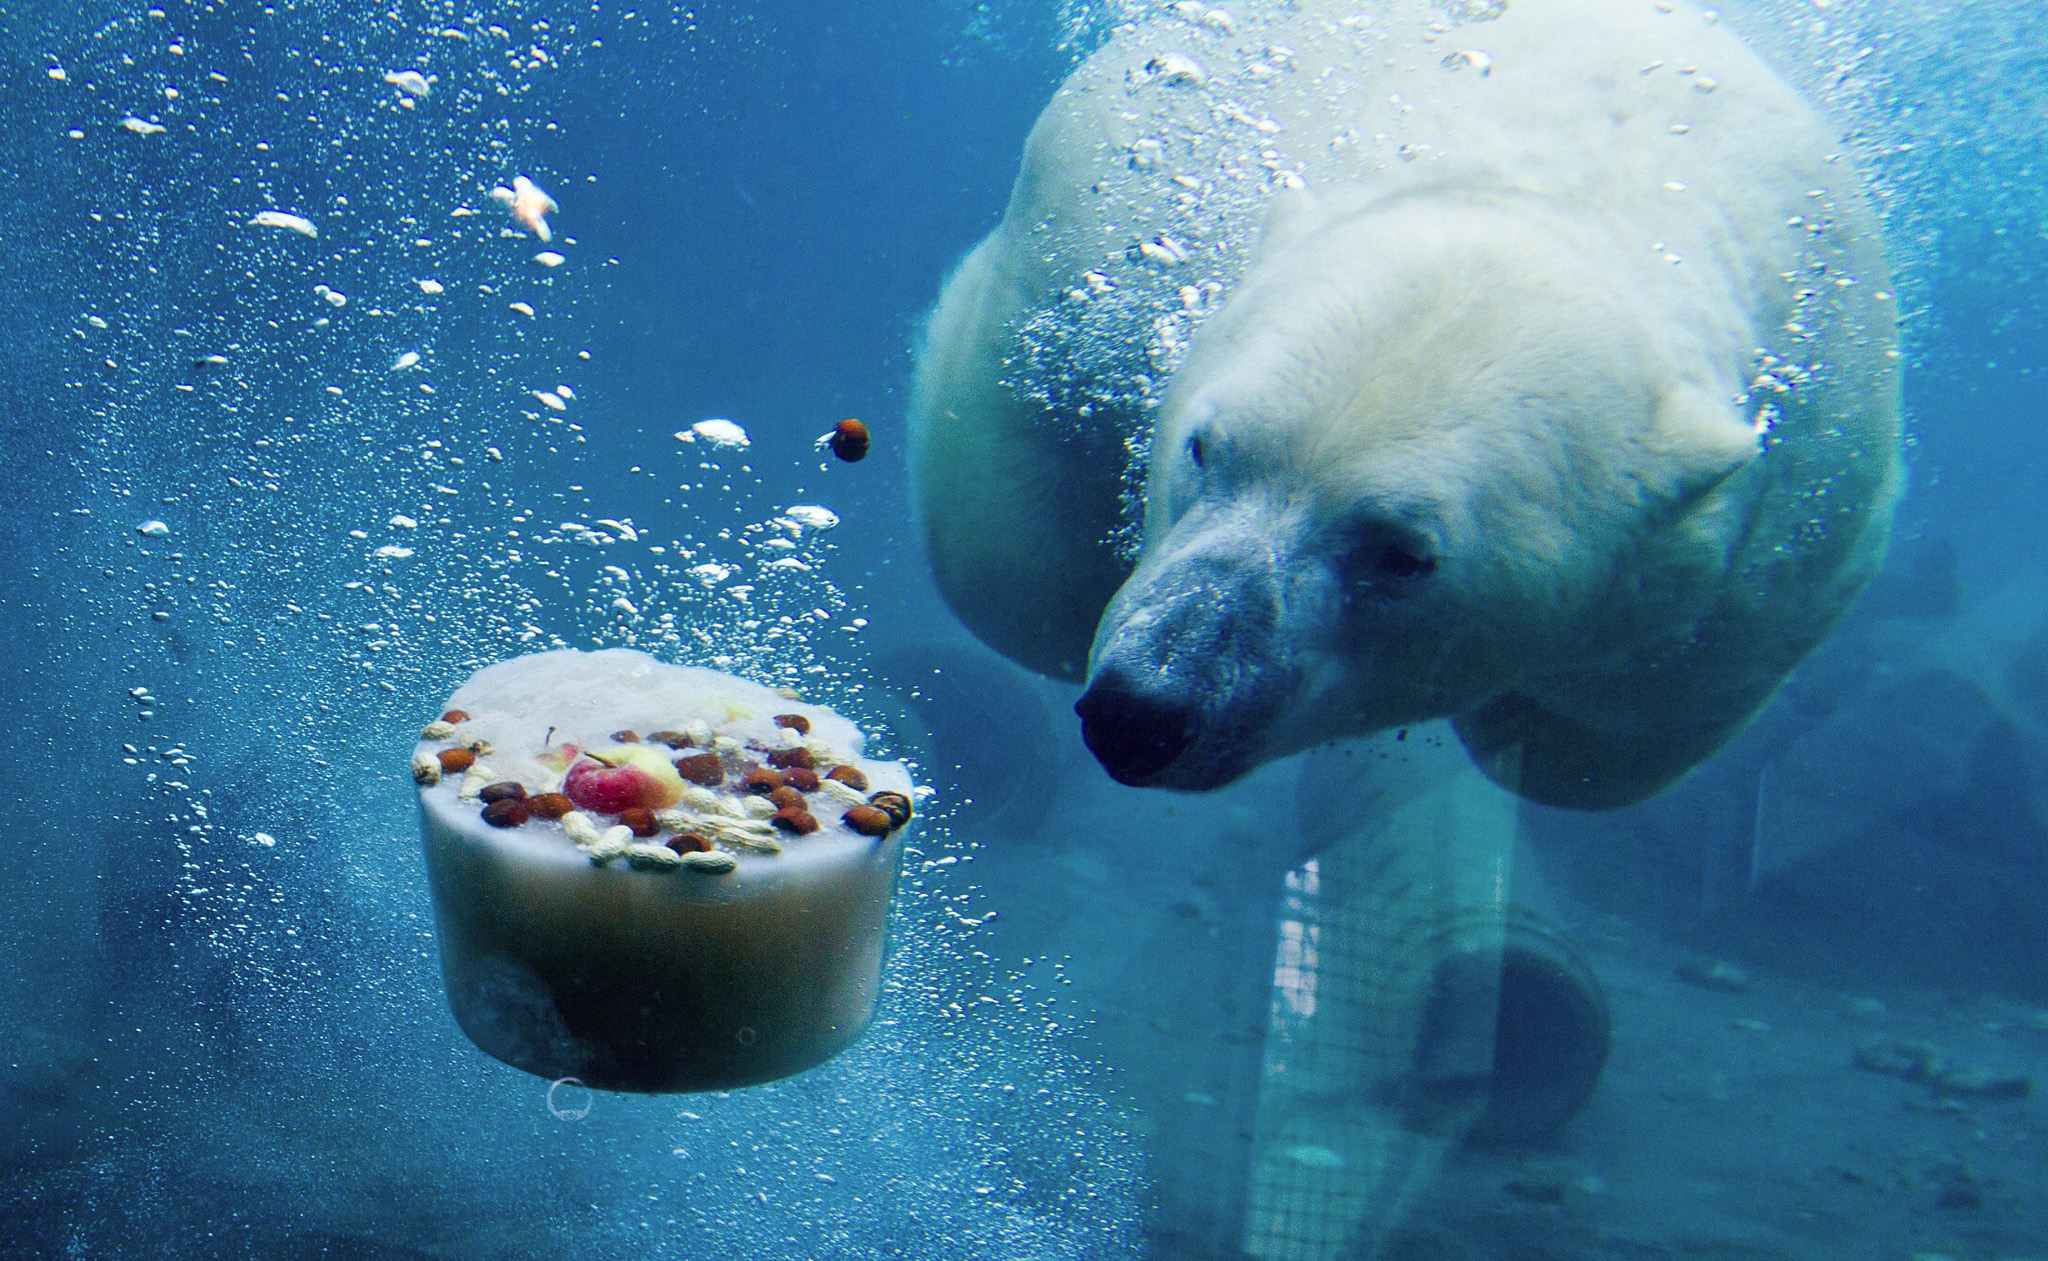 A polar bear named Nanuq is seen through the glass wall of the basin of his enclosure diving for an ice cake made of frozen fish, meat and fruit in the zoo in Hanover, Germany.